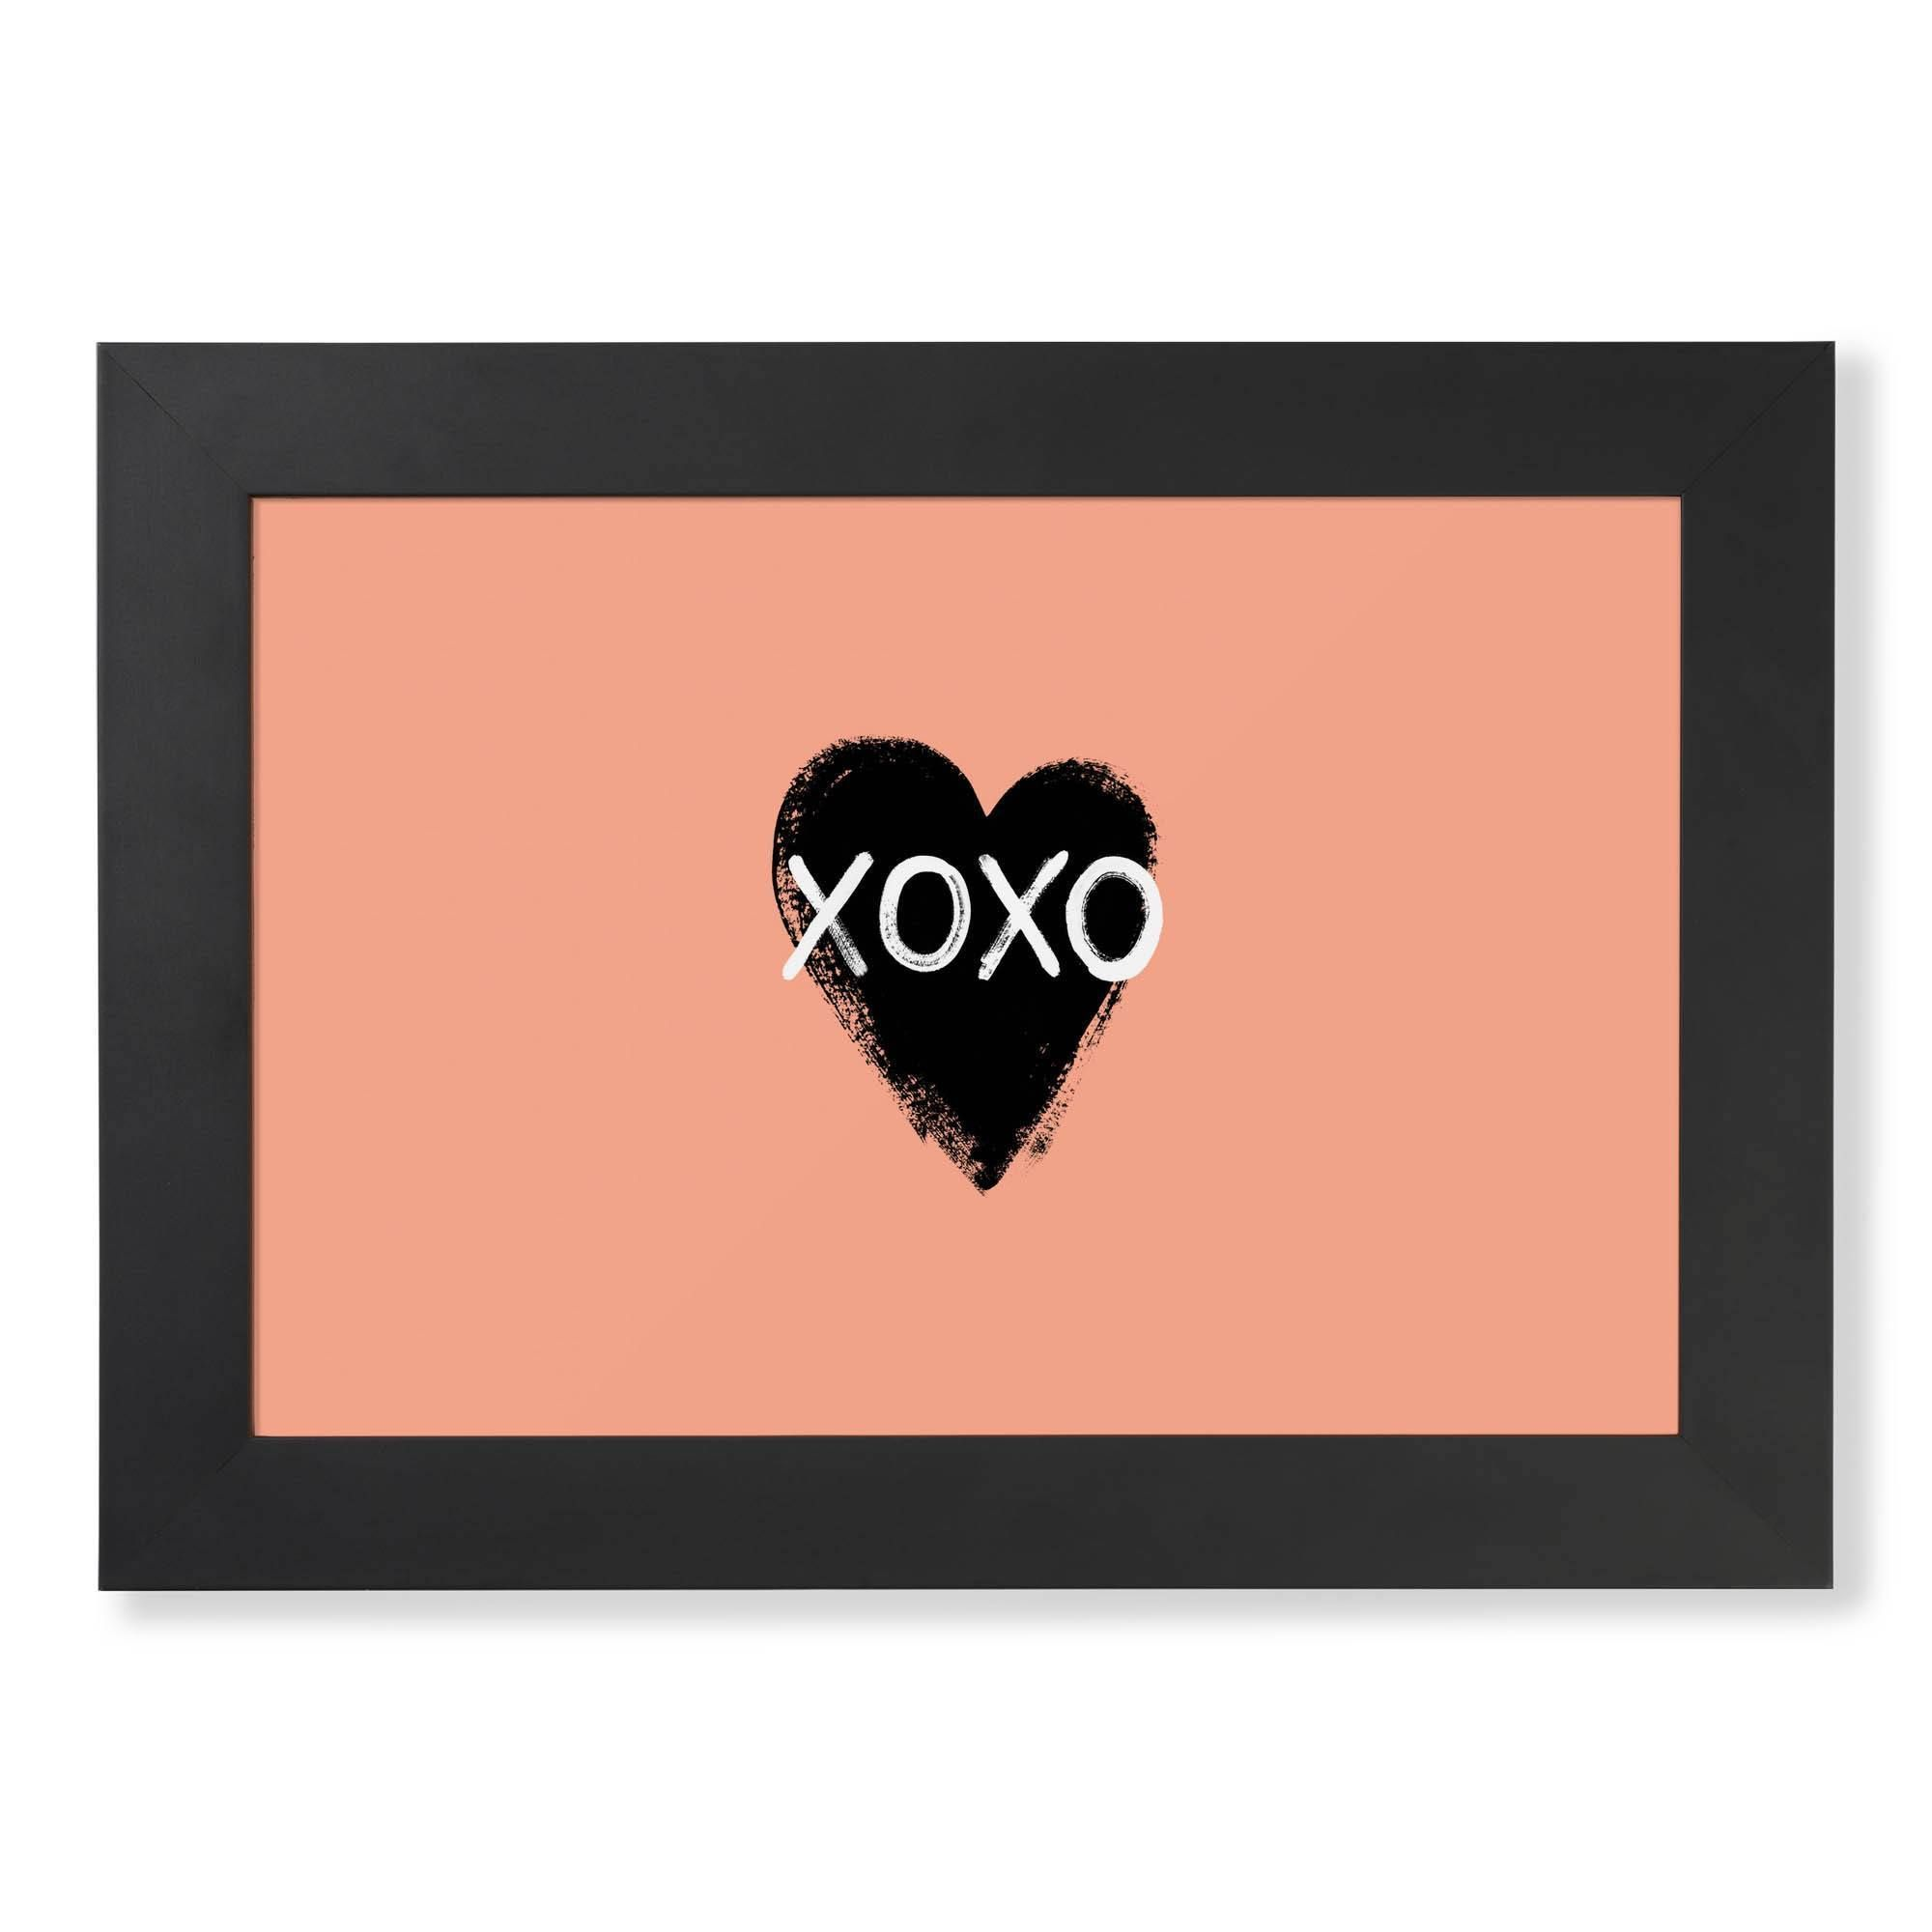 XOXO Forever-Black on Light Peach